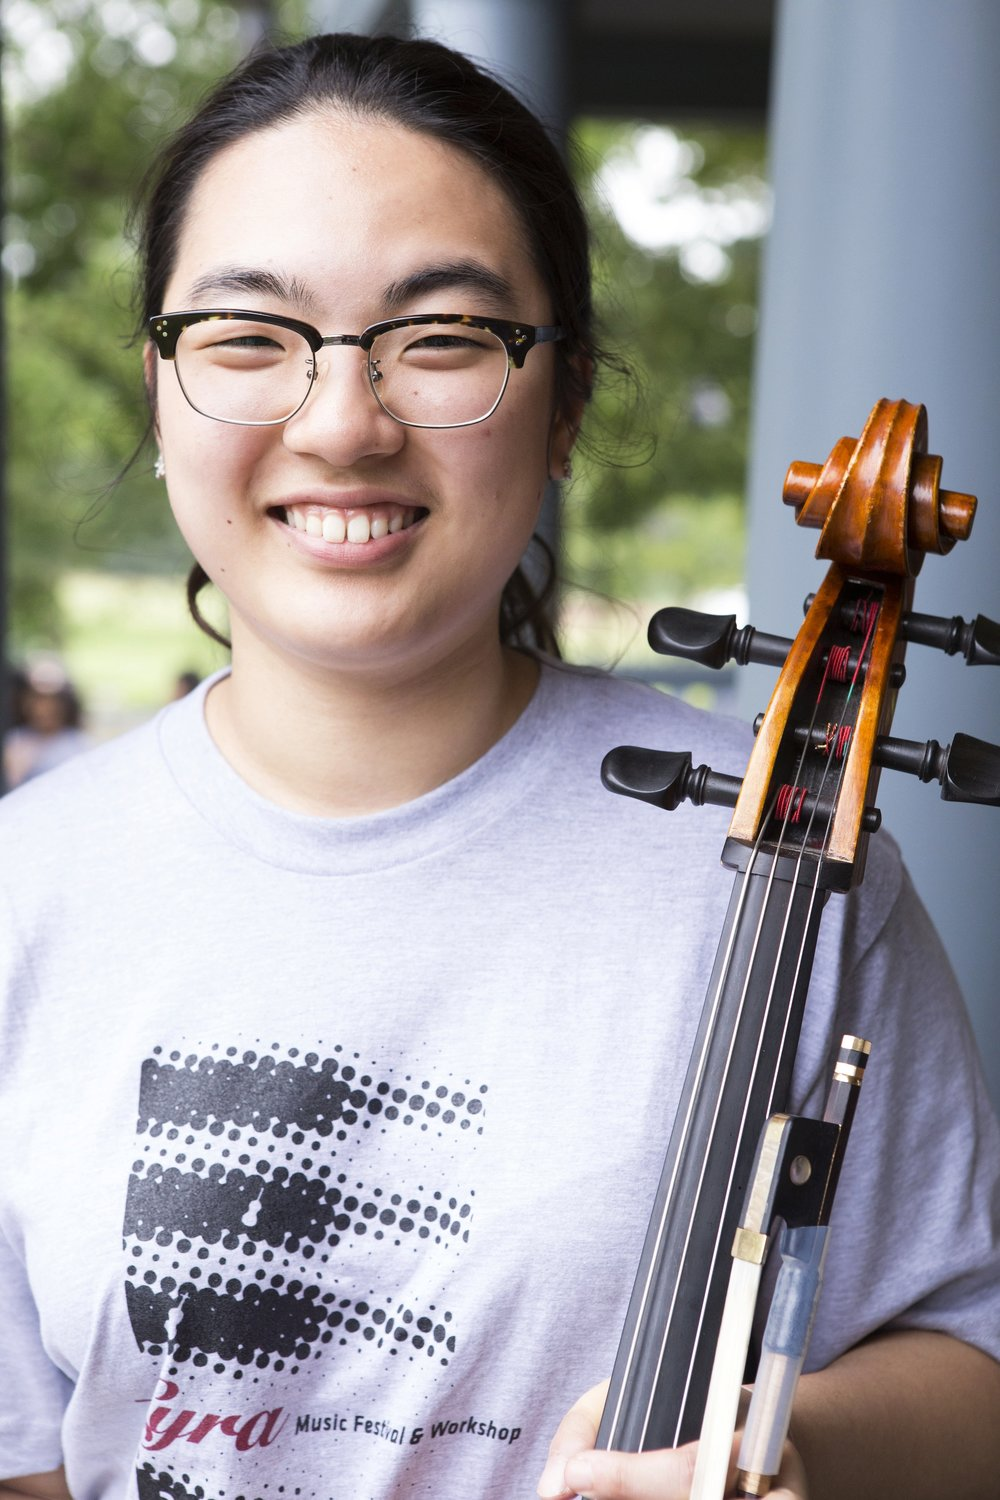 Cellist, Dayoung Park Originally from Korea, Ms. Park moved to the United States to pursue her musical interests. She now lives in New Jersey and studies with Julia Kang.  She participated in the 2016 Lyra Music Festival and Workshop as a Lyra Young Artist.